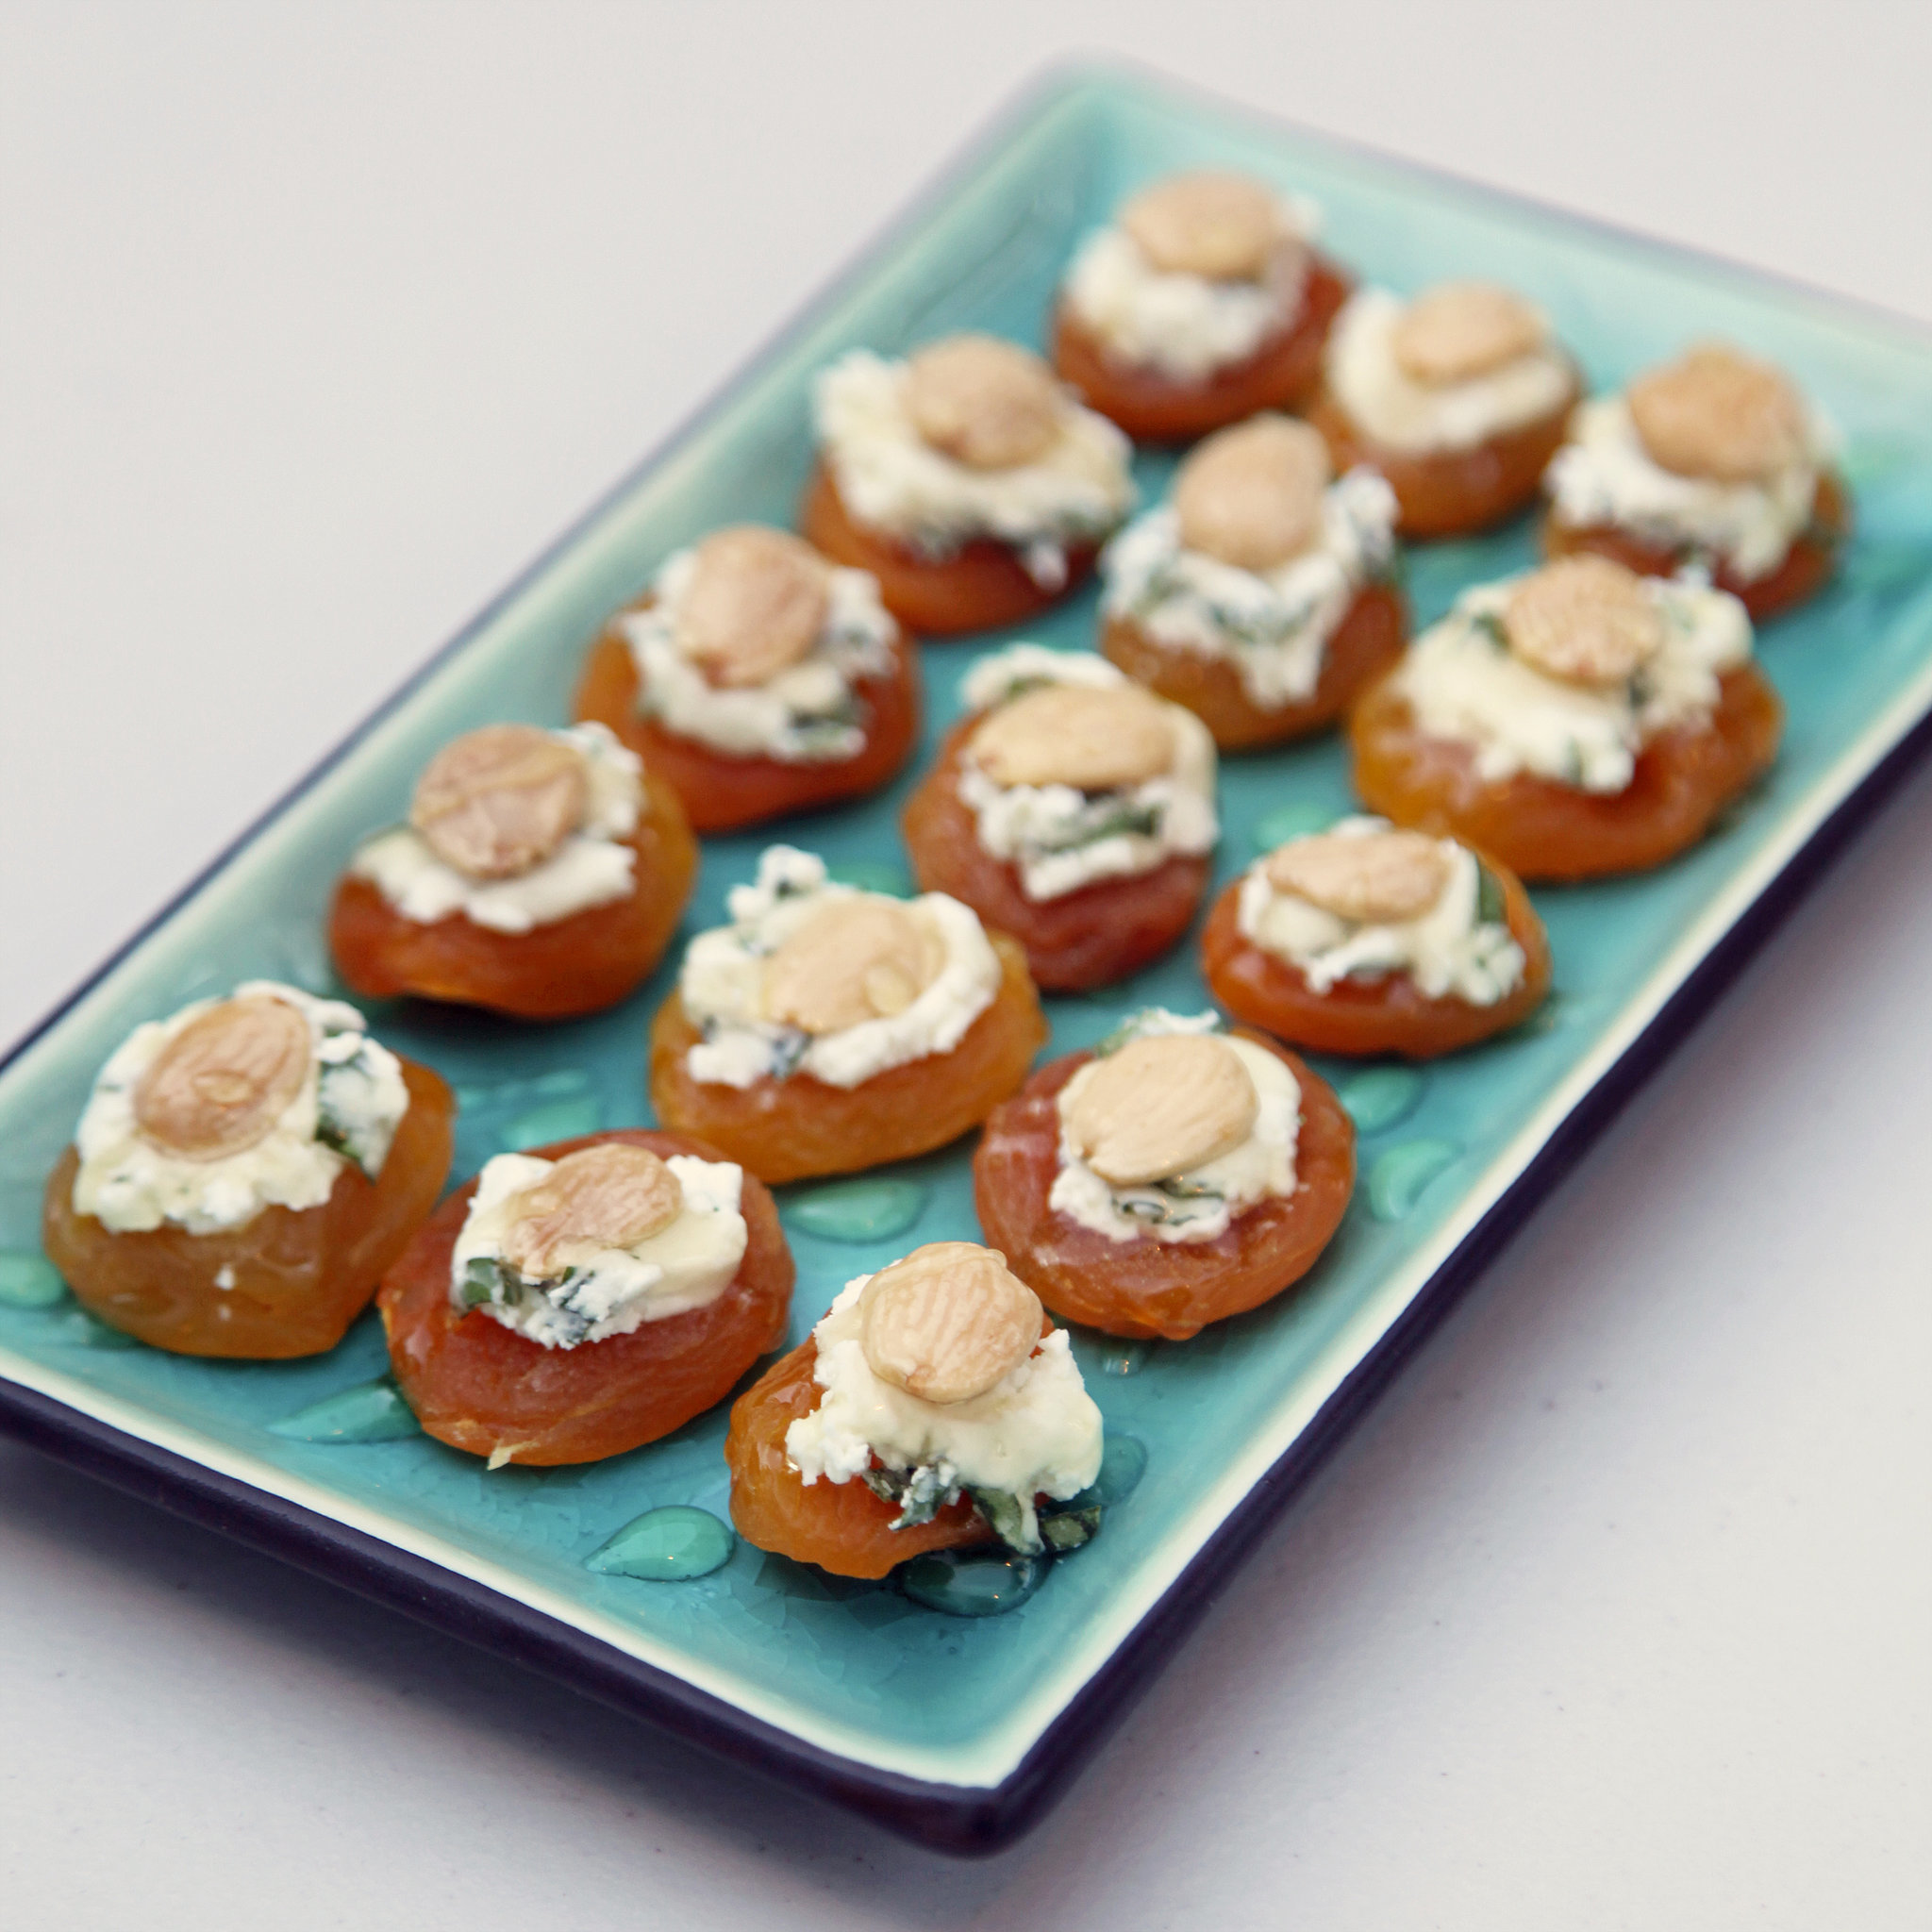 Apricot, Goat Cheese, and Almond Bites